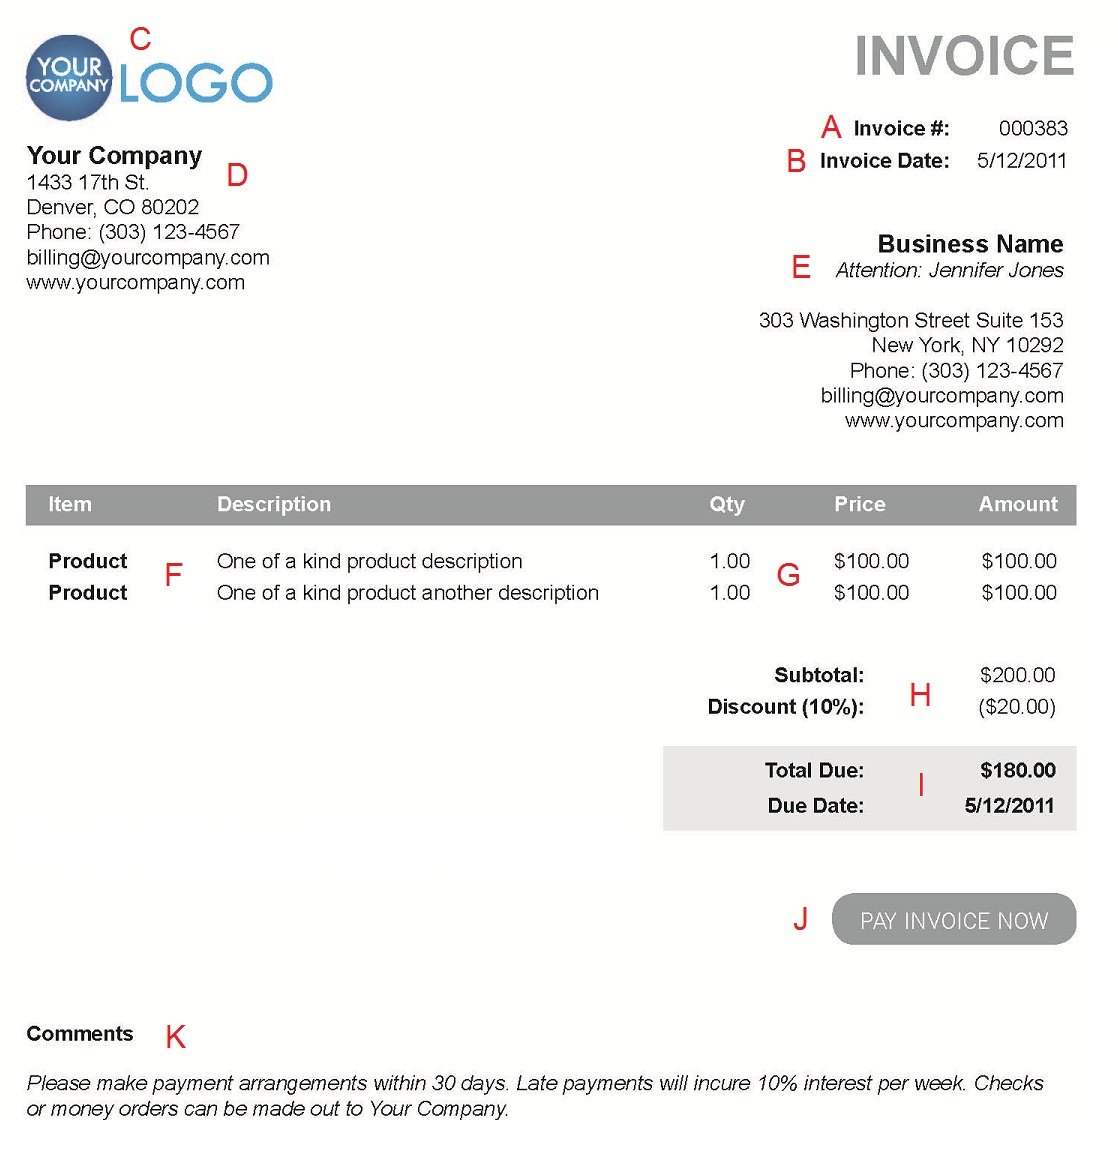 Ebitus  Pleasing The  Different Sections Of An Electronic Payment Invoice With Gorgeous A  With Divine Due Upon Receipt Invoice Also Google Doc Template Invoice In Addition How To Calculate Invoice Price And How Do You Find The Invoice Price Of A Car As Well As Form Of Invoice Additionally Opentext Vendor Invoice Management From Paysimplecom With Ebitus  Gorgeous The  Different Sections Of An Electronic Payment Invoice With Divine A  And Pleasing Due Upon Receipt Invoice Also Google Doc Template Invoice In Addition How To Calculate Invoice Price From Paysimplecom